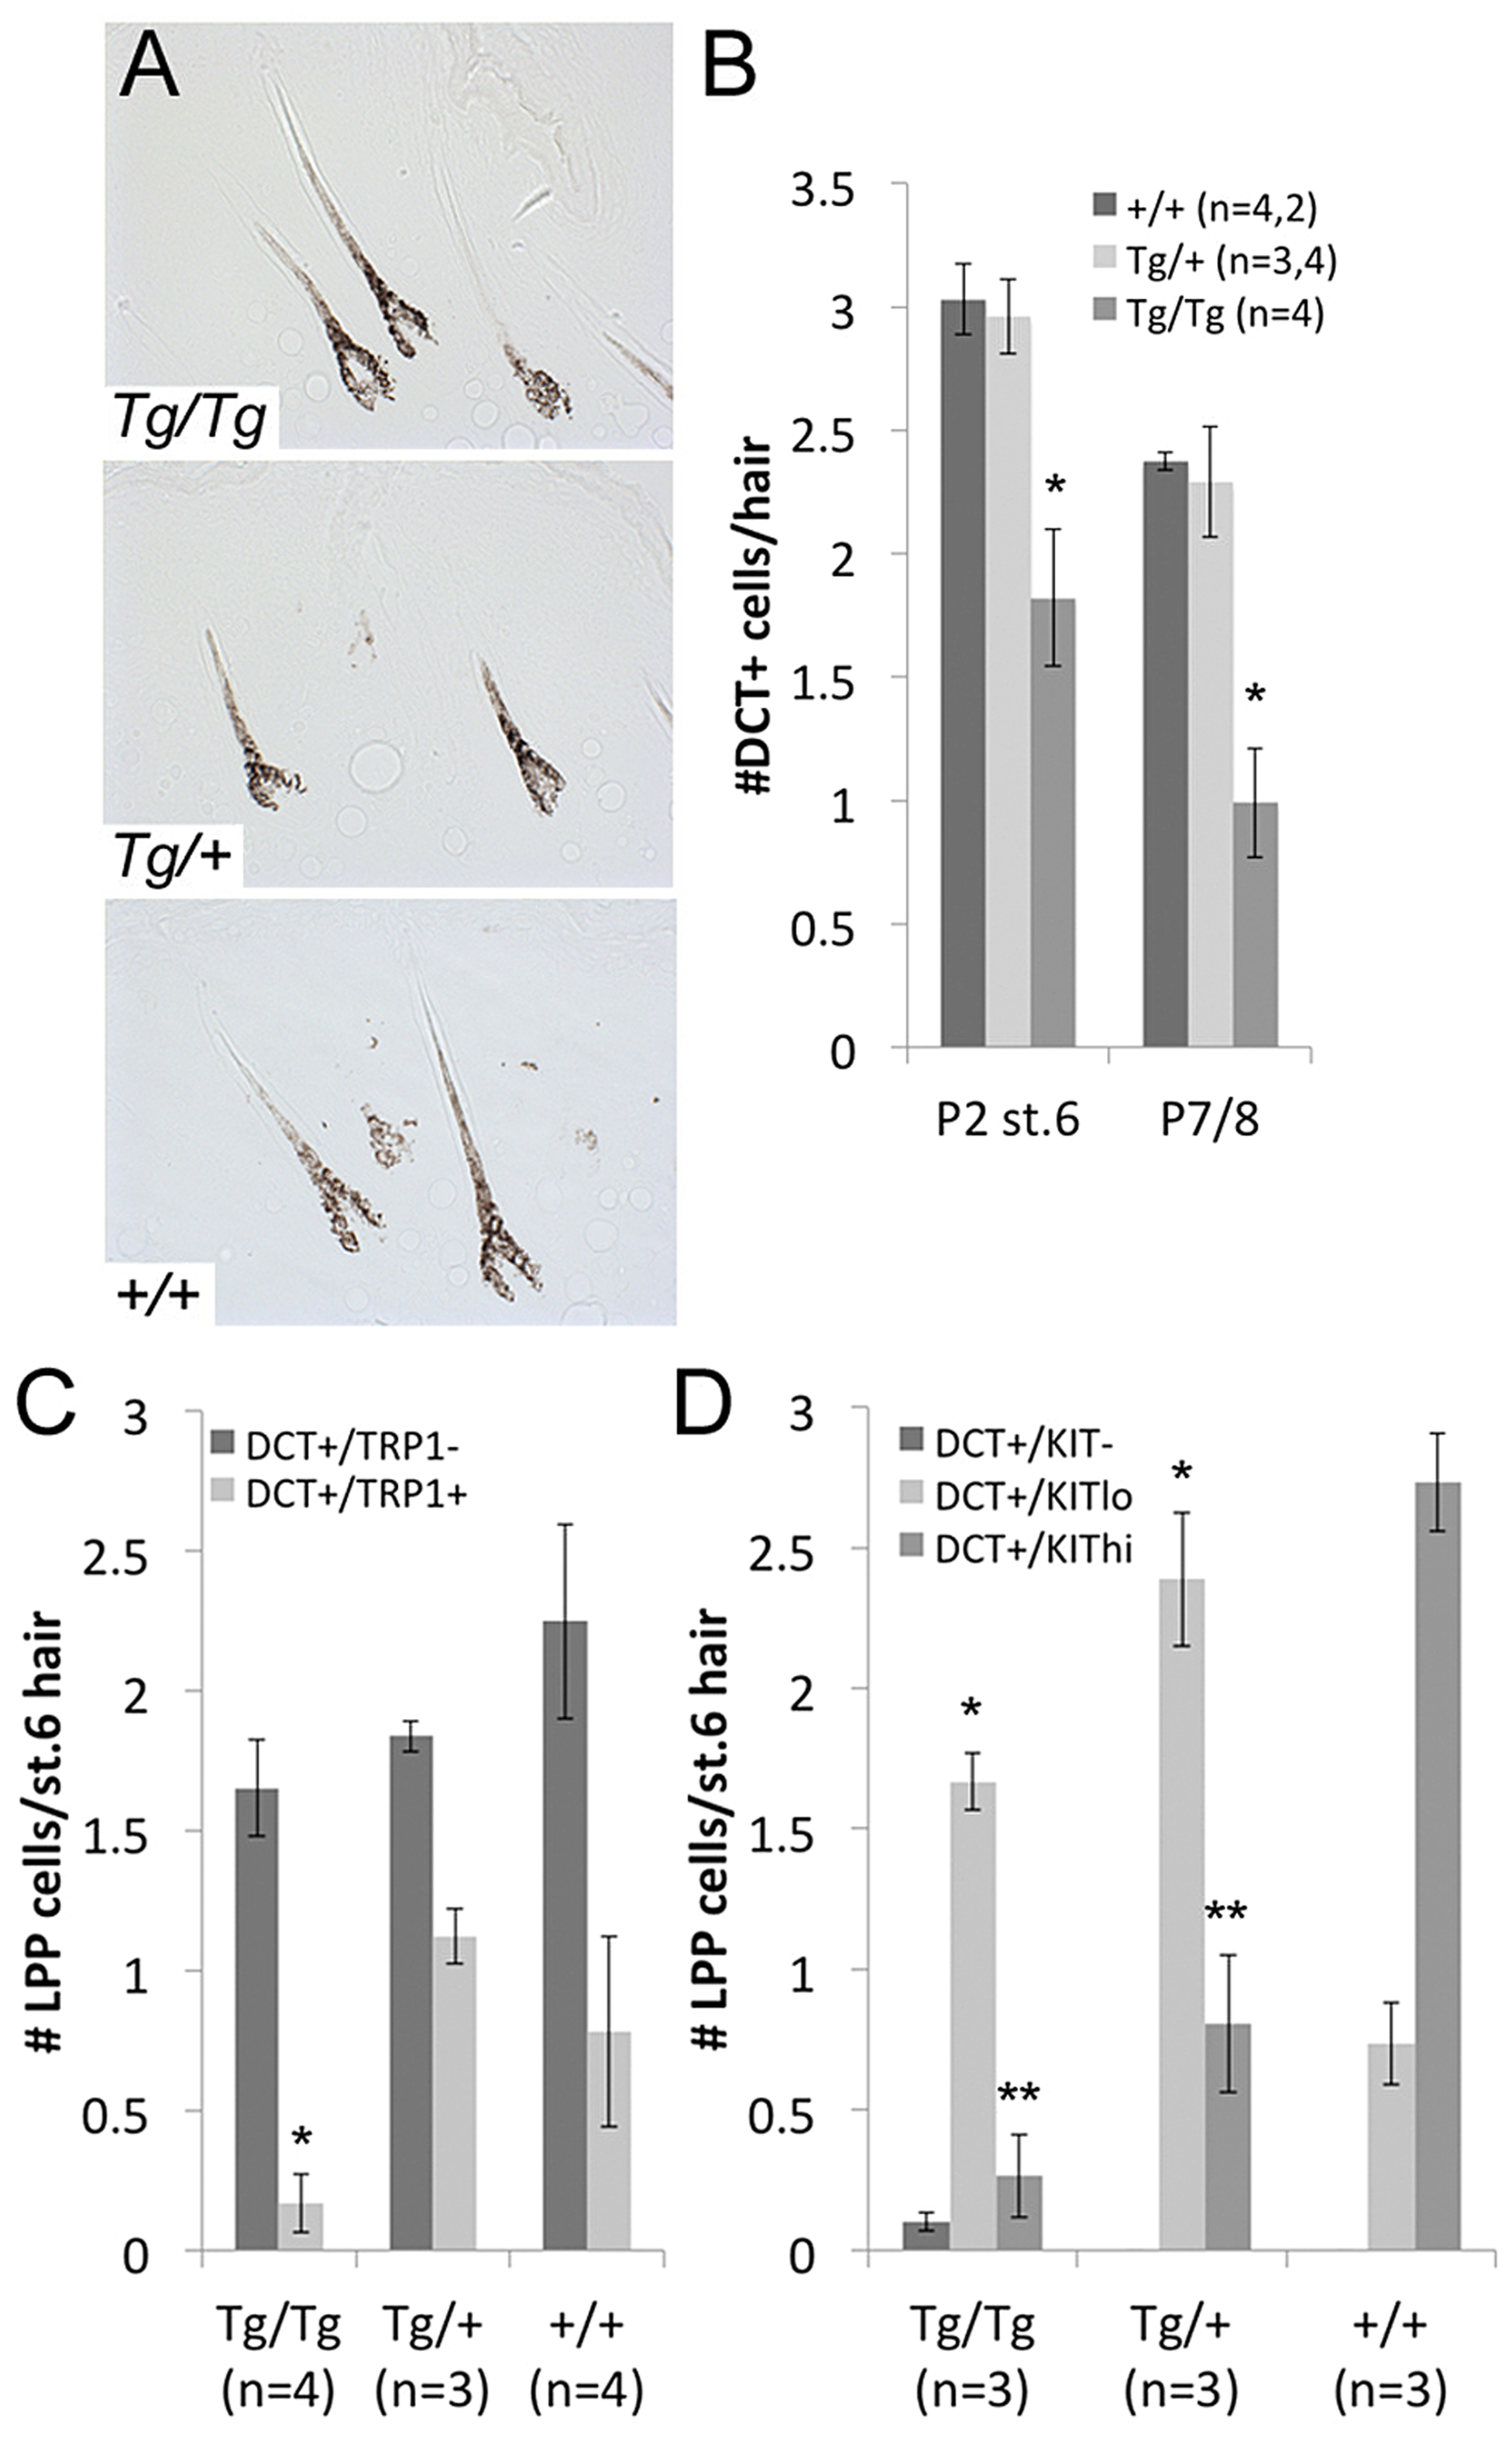 LPP melanocytes are reduced in <i>Tg(DctSox10)</i> homozygotes during hair morphogenesis.